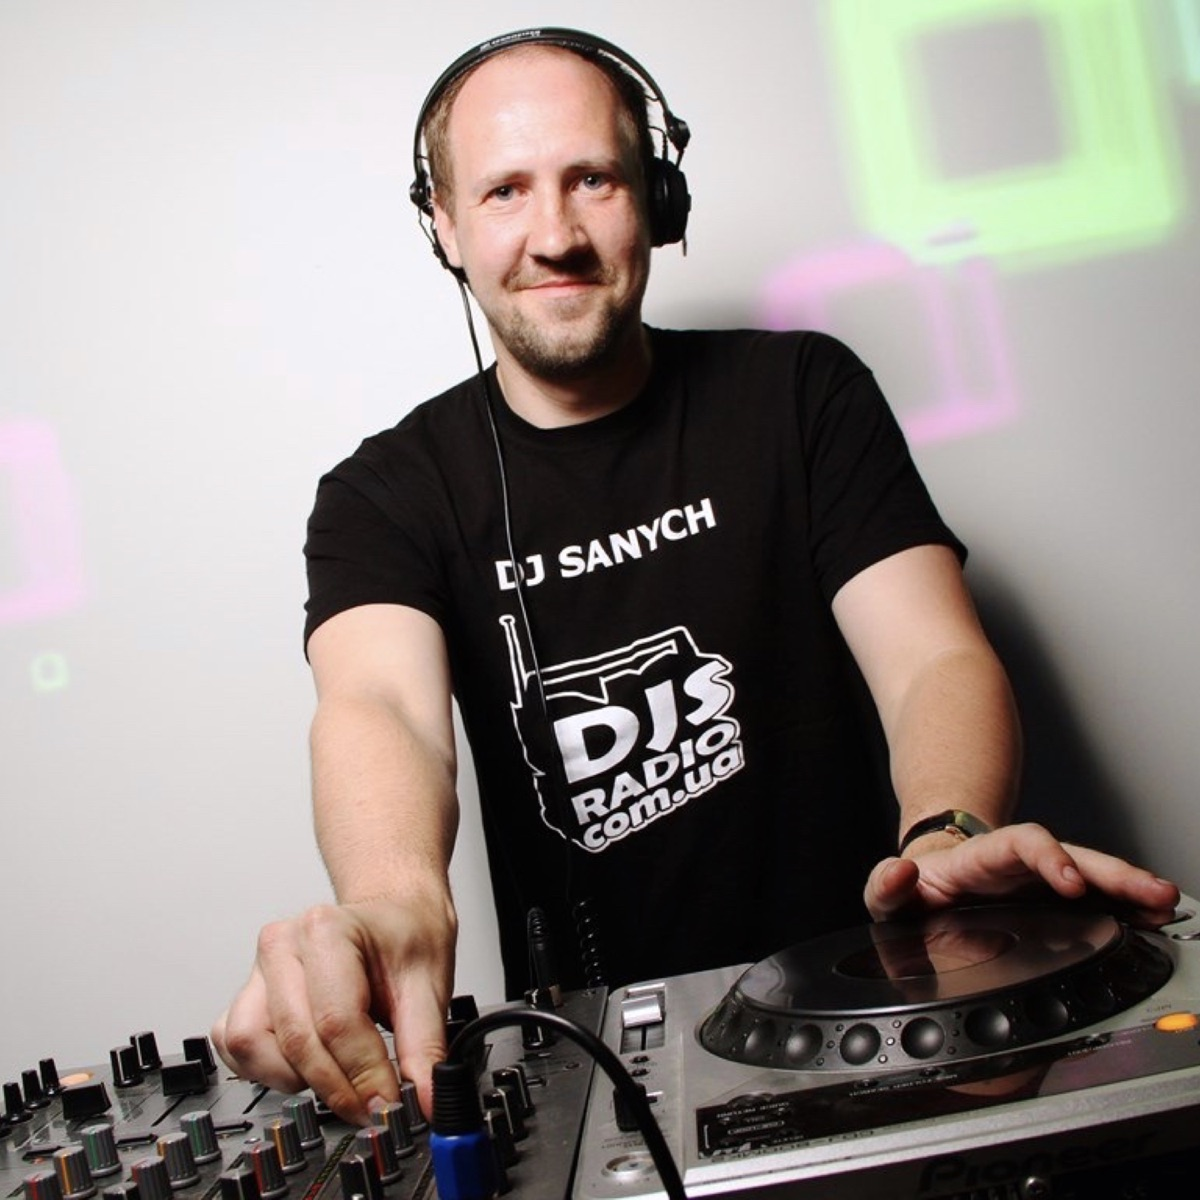 The age of house music by DJ Sanych